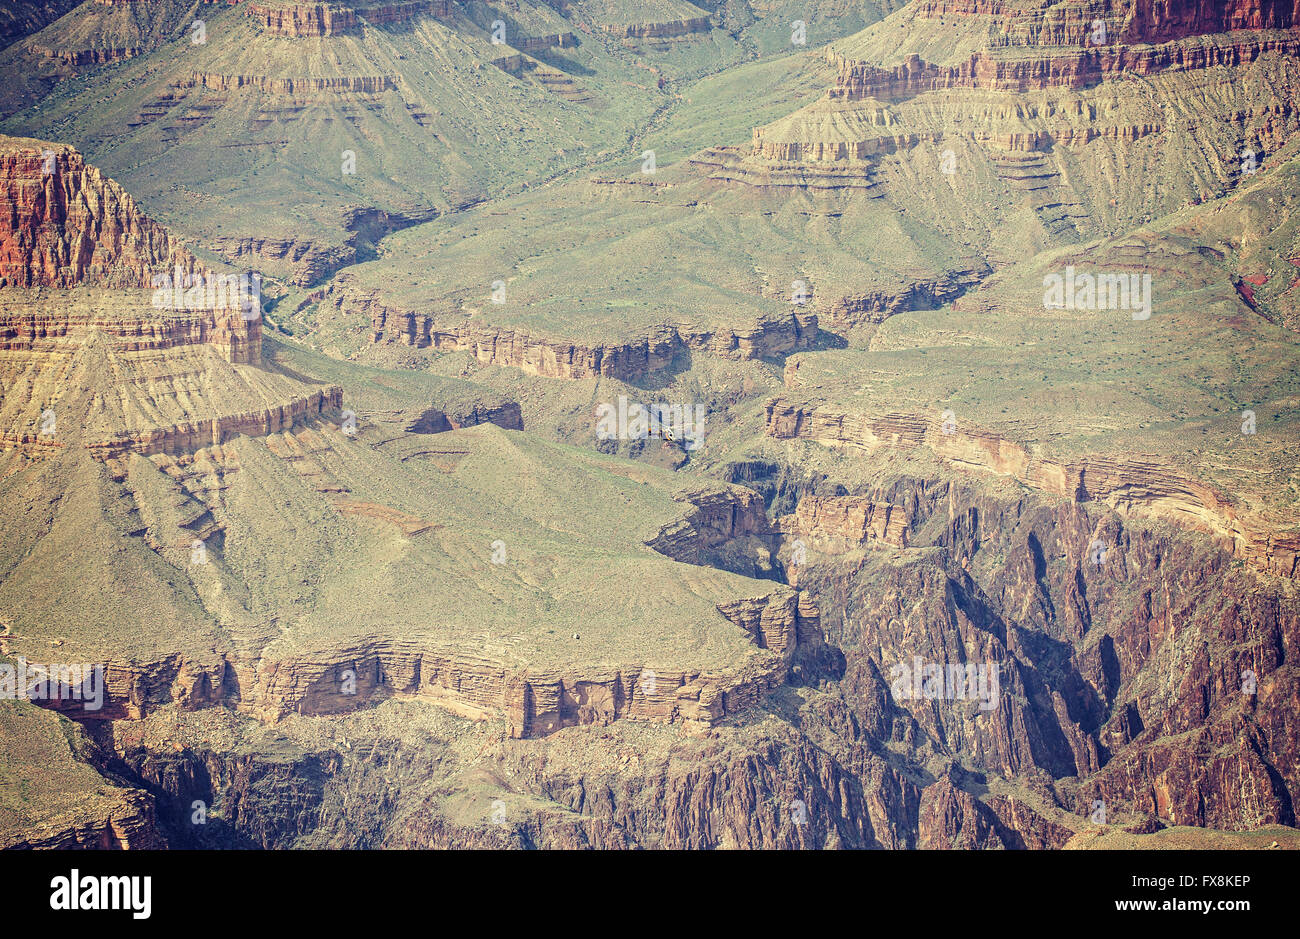 Vintage toned photo of a helicopter carrying load over Grand Canyon, Arizona, USA. - Stock Image